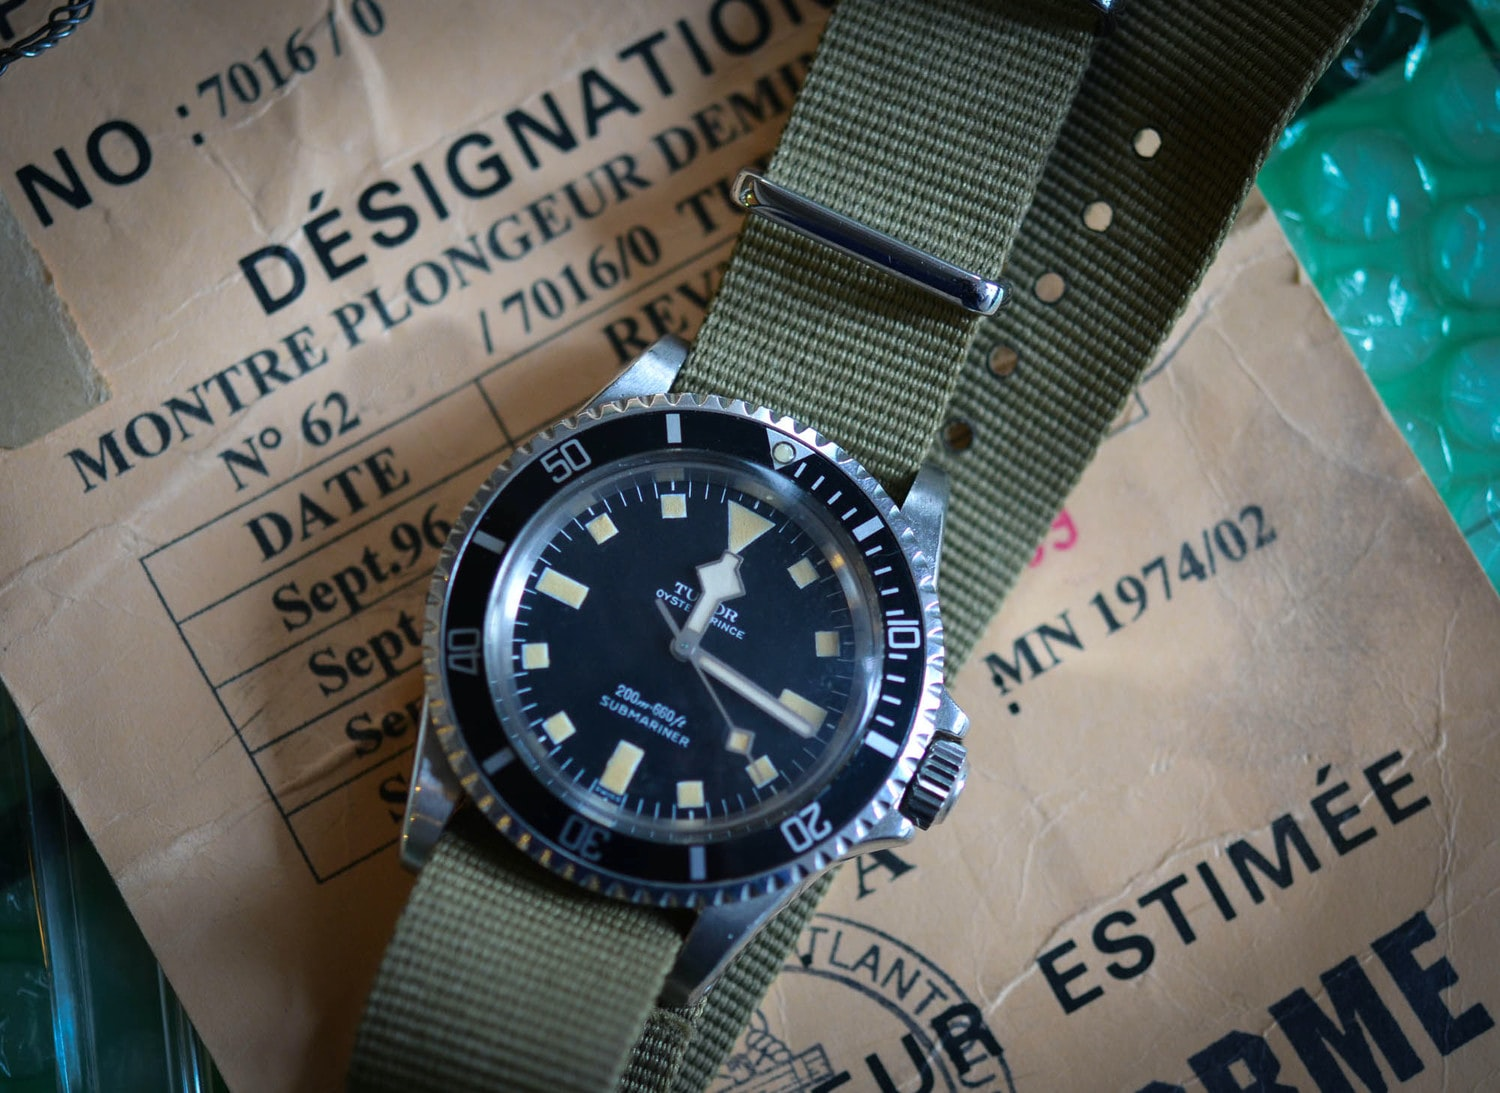 Historical Perspectives: Just Because: A Tudor Submariner Issued By The French Marine Nationale